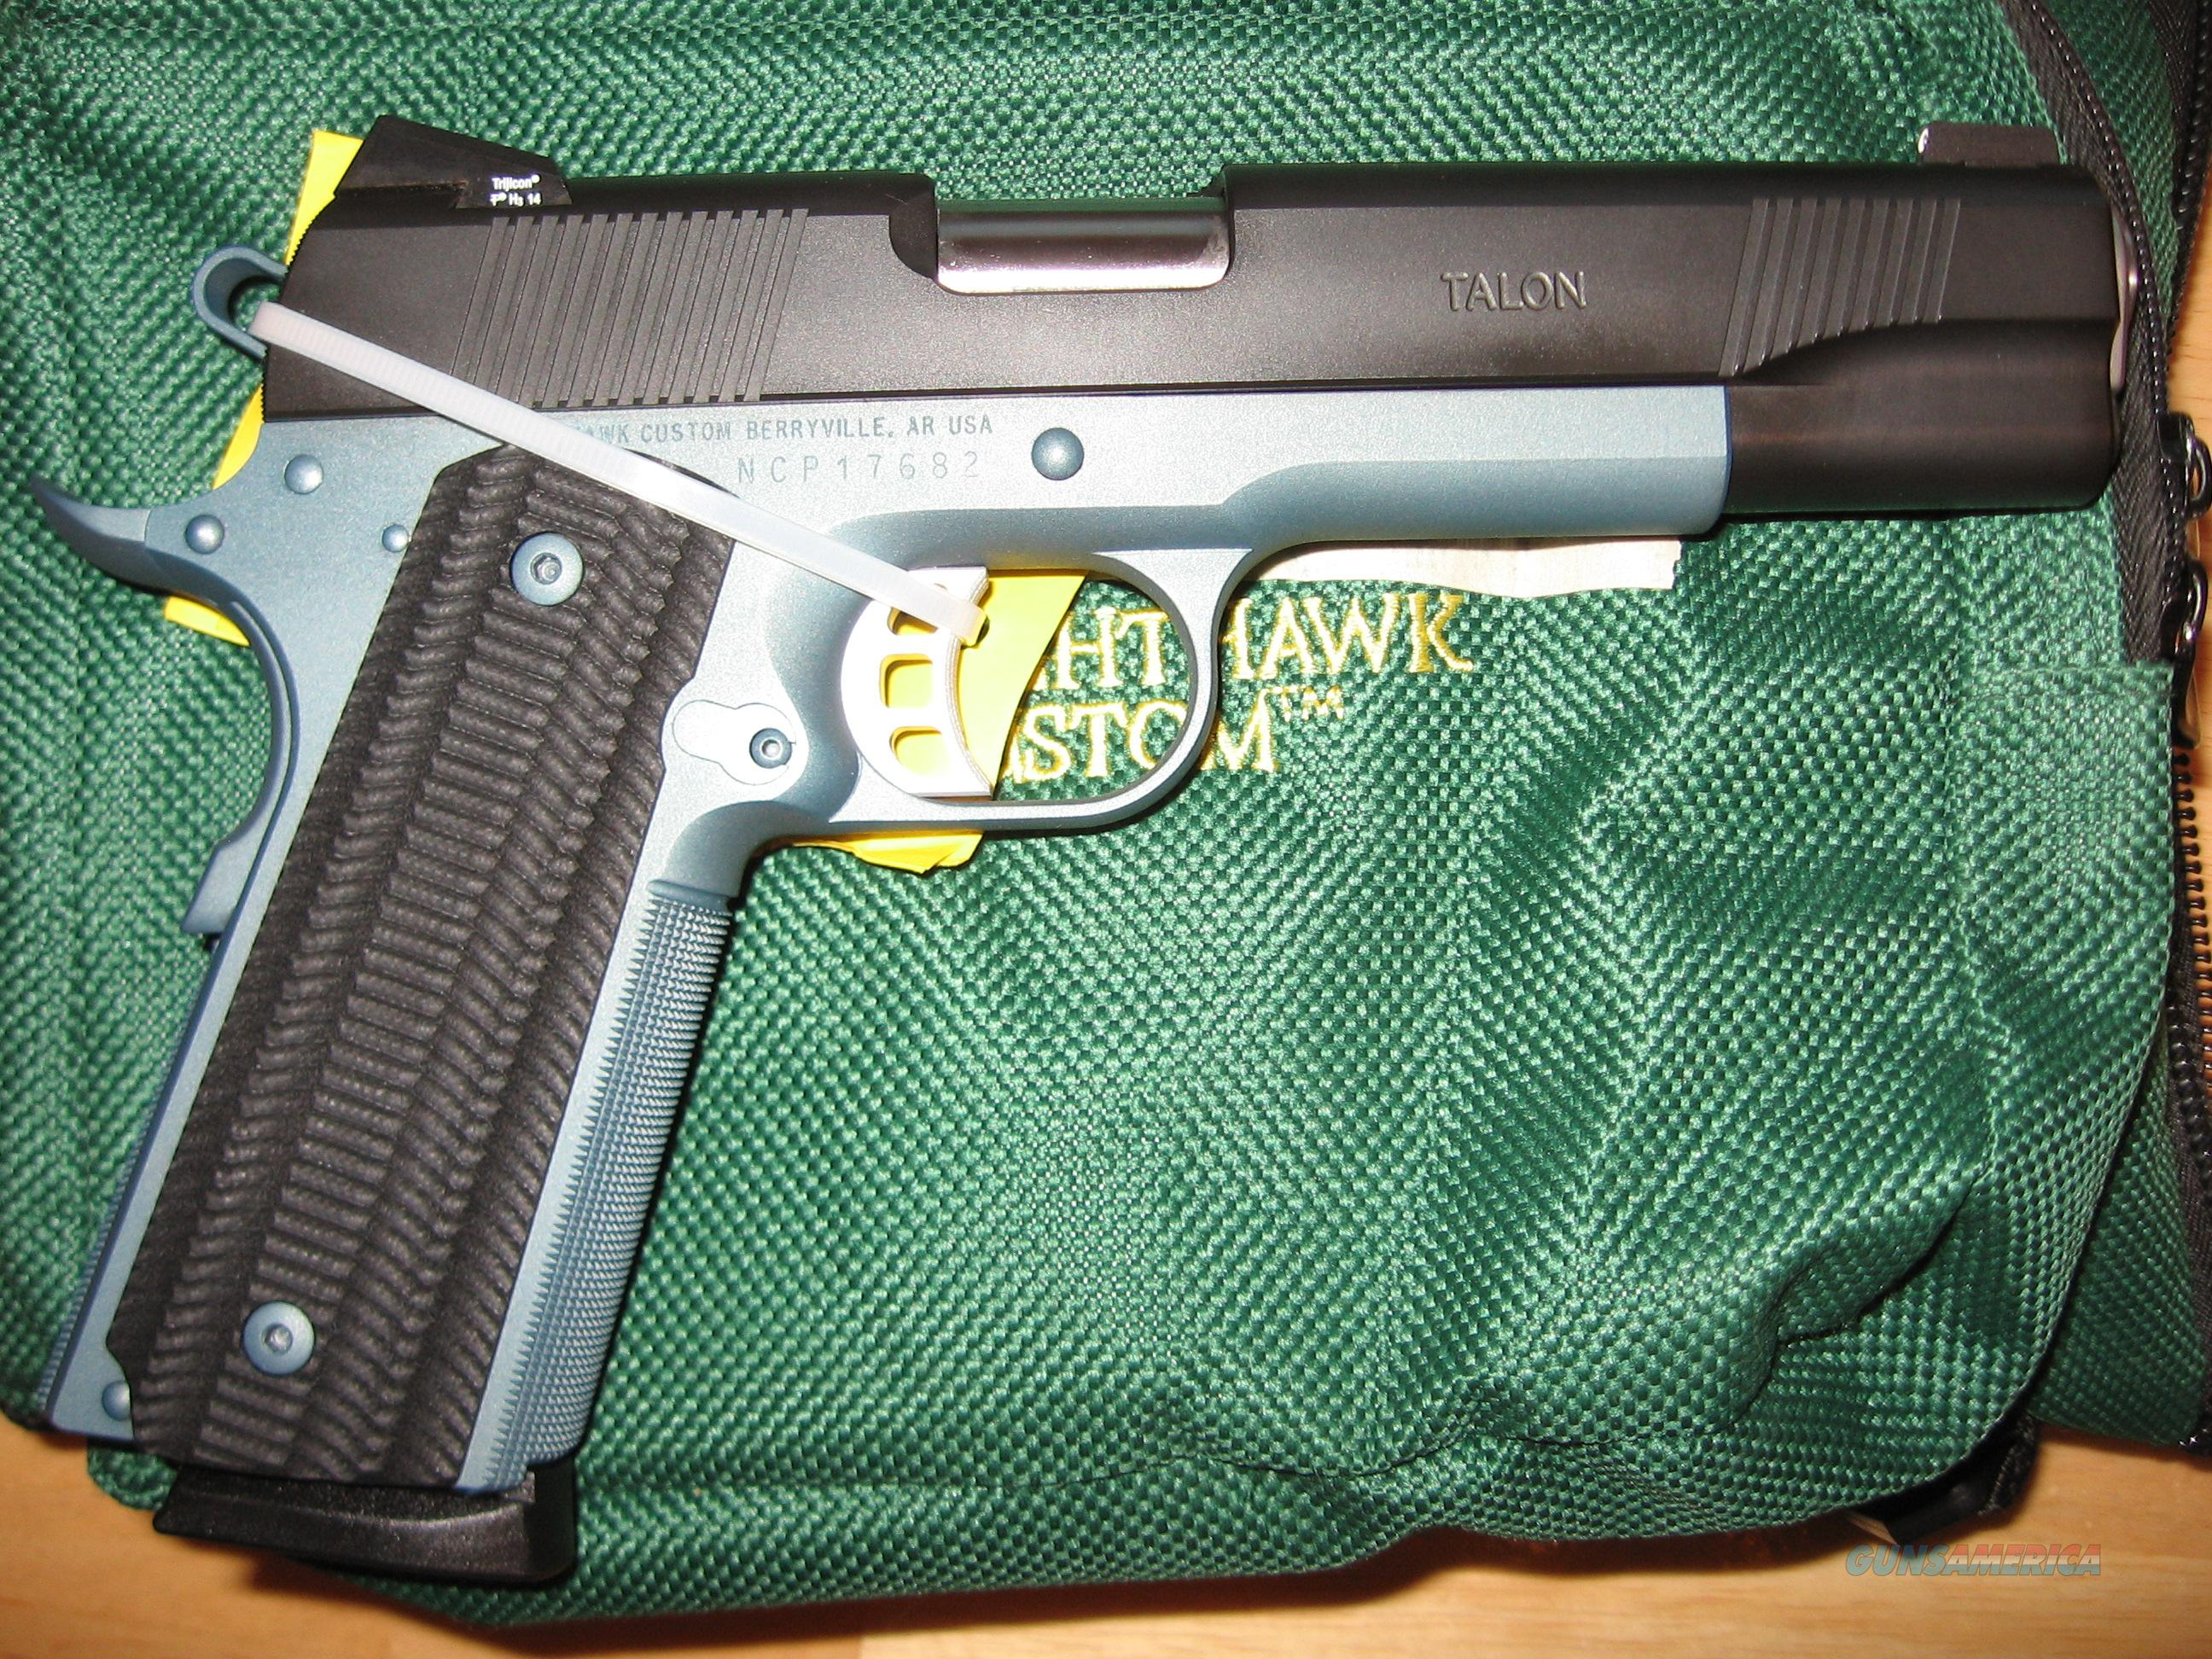 Night Hawk Custom Talon  Guns > Pistols > Nighthawk Pistols